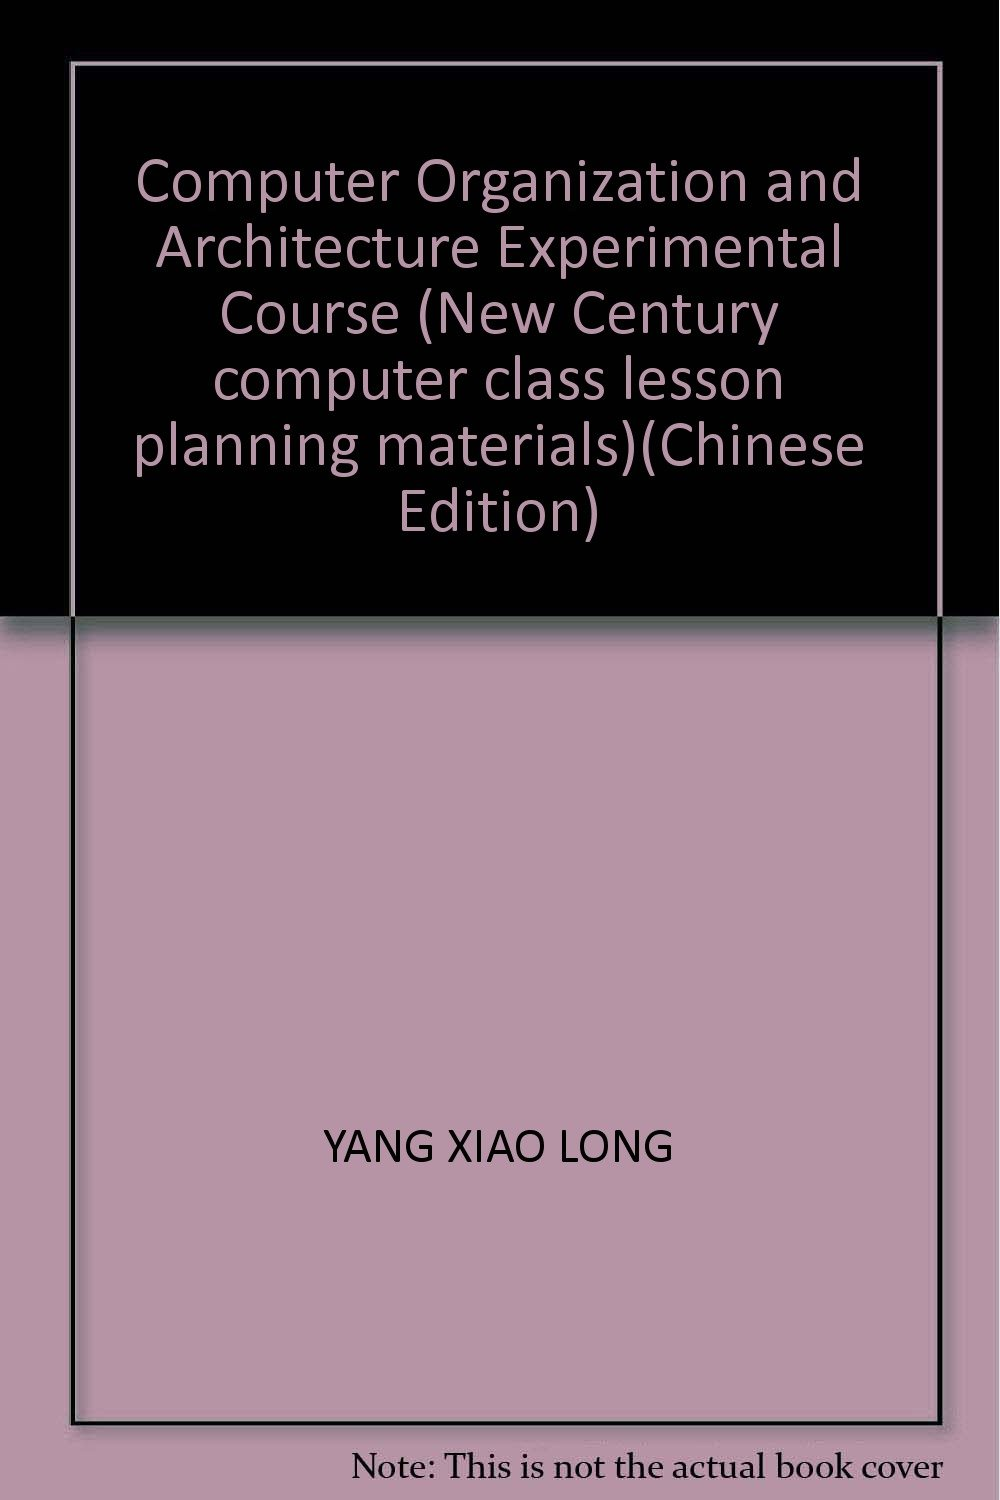 Download Computer Organization and Architecture Experimental Course (New Century computer class lesson planning materials)(Chinese Edition) pdf epub